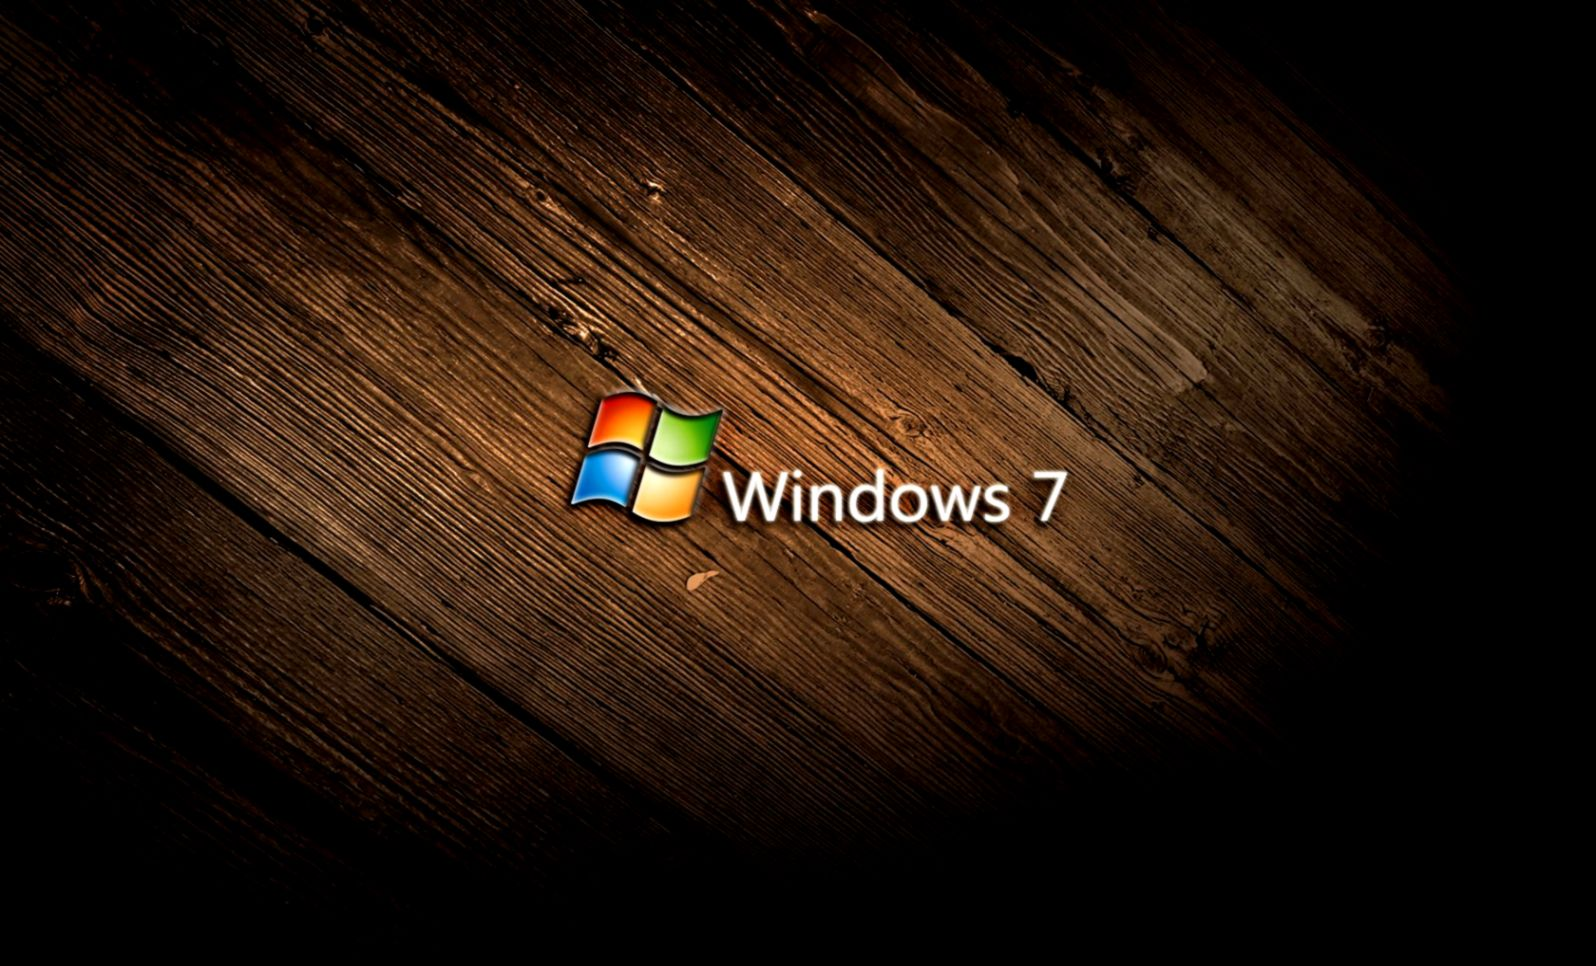 Desktop Background For Windows 7 Hd Wallpapers 1080p 1596x966